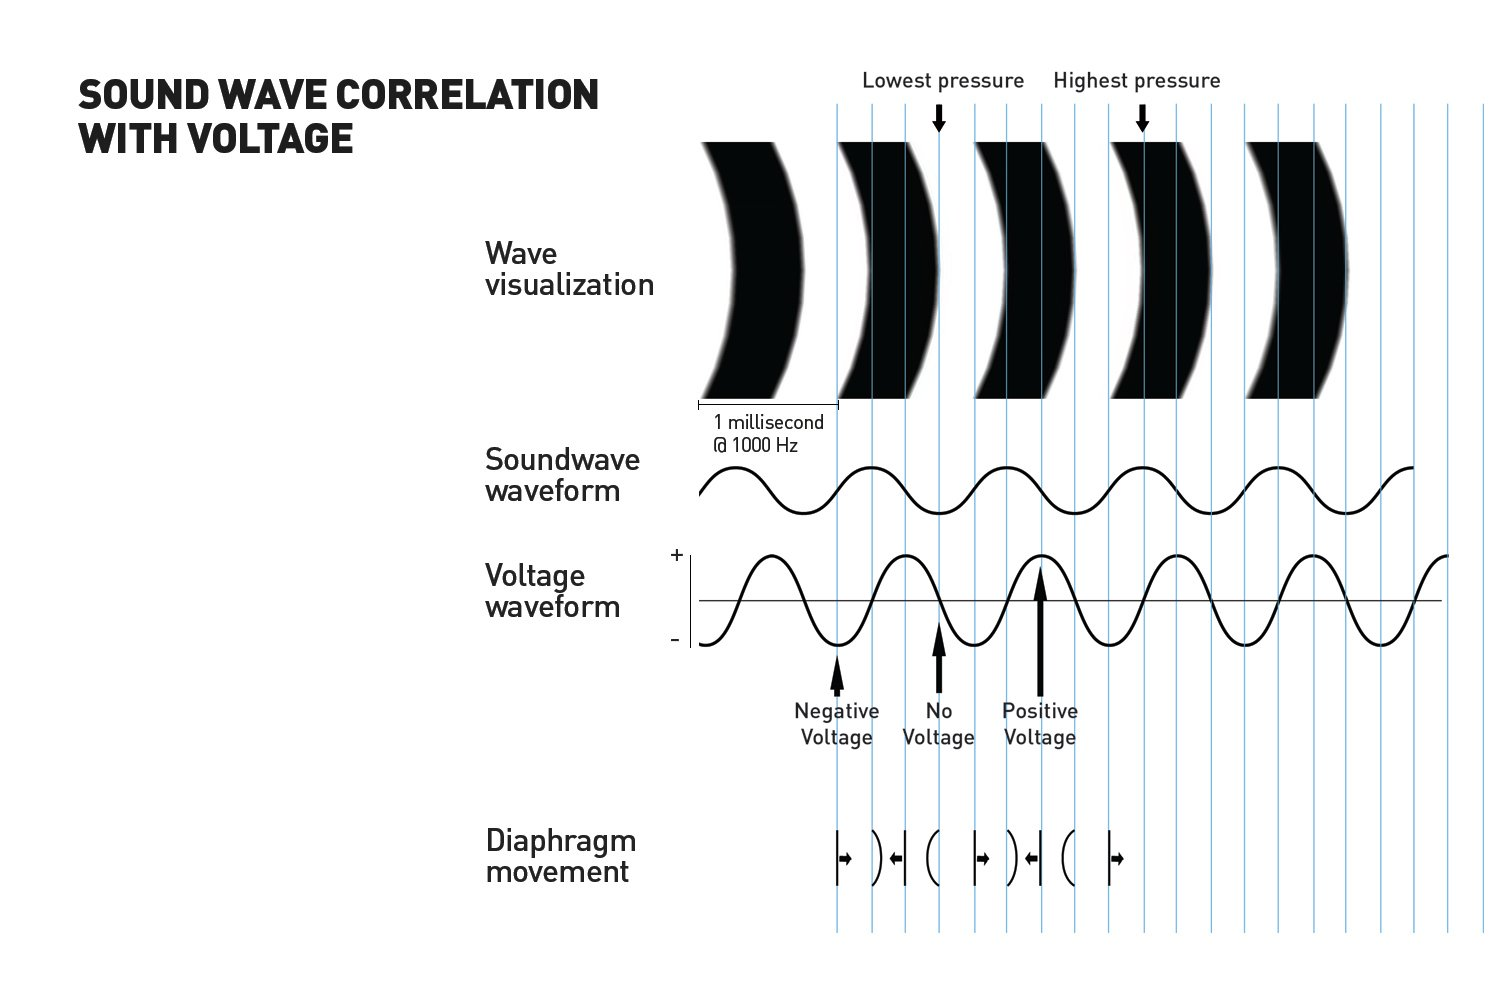 soundwave correlation with voltage